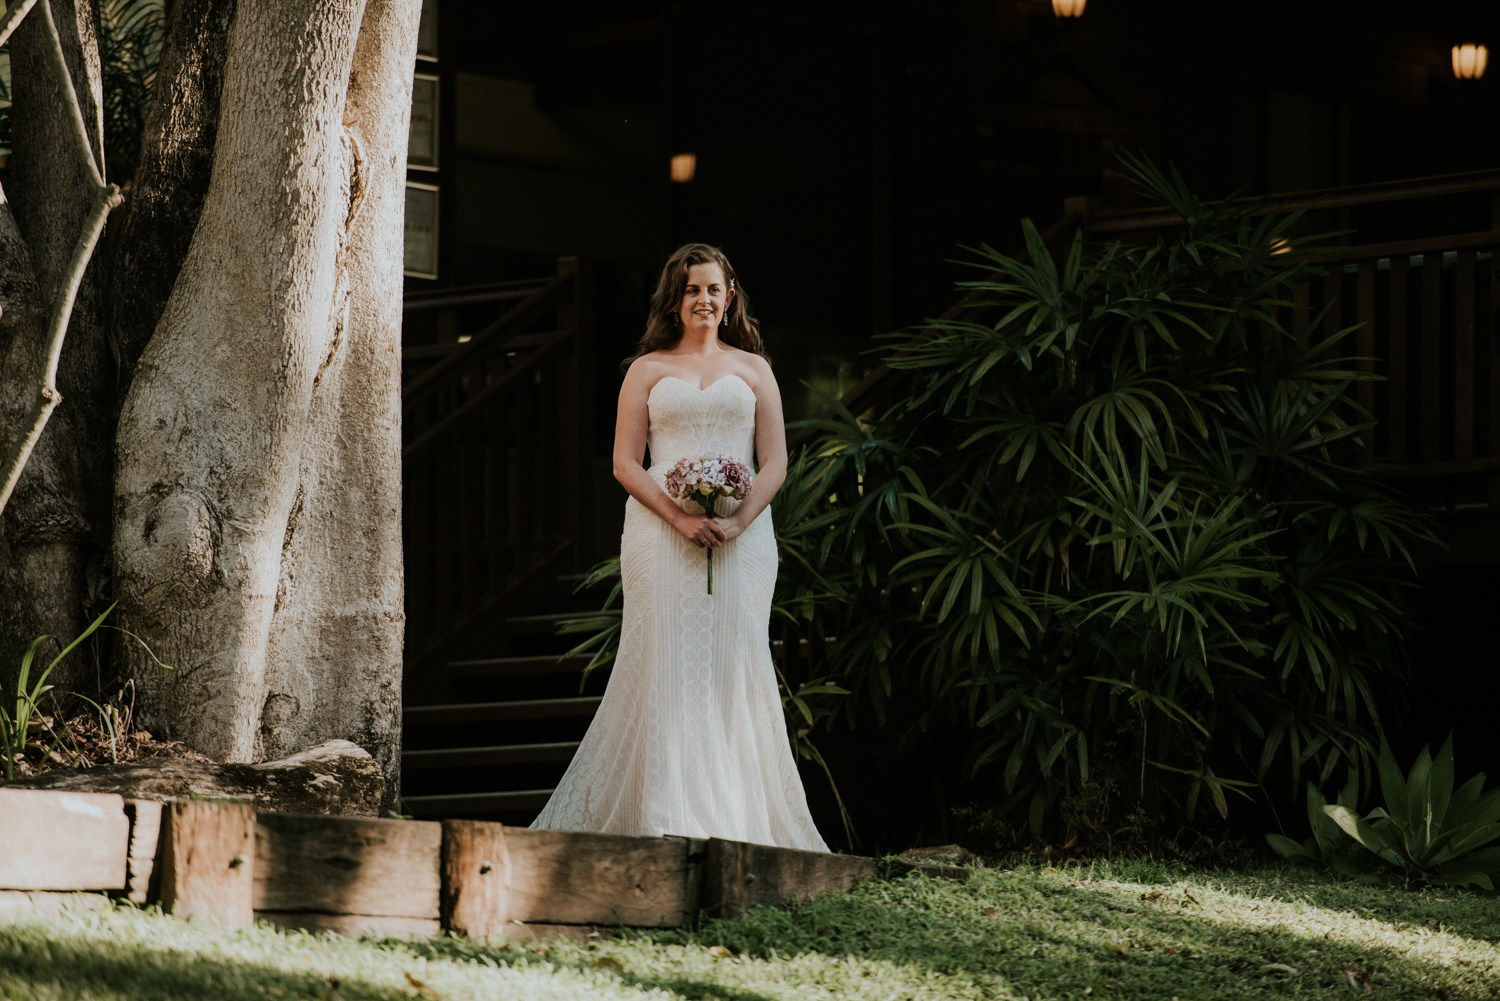 Brisbane Wedding Photographer | Bundaleer Rainforest Gardens-18.jpg